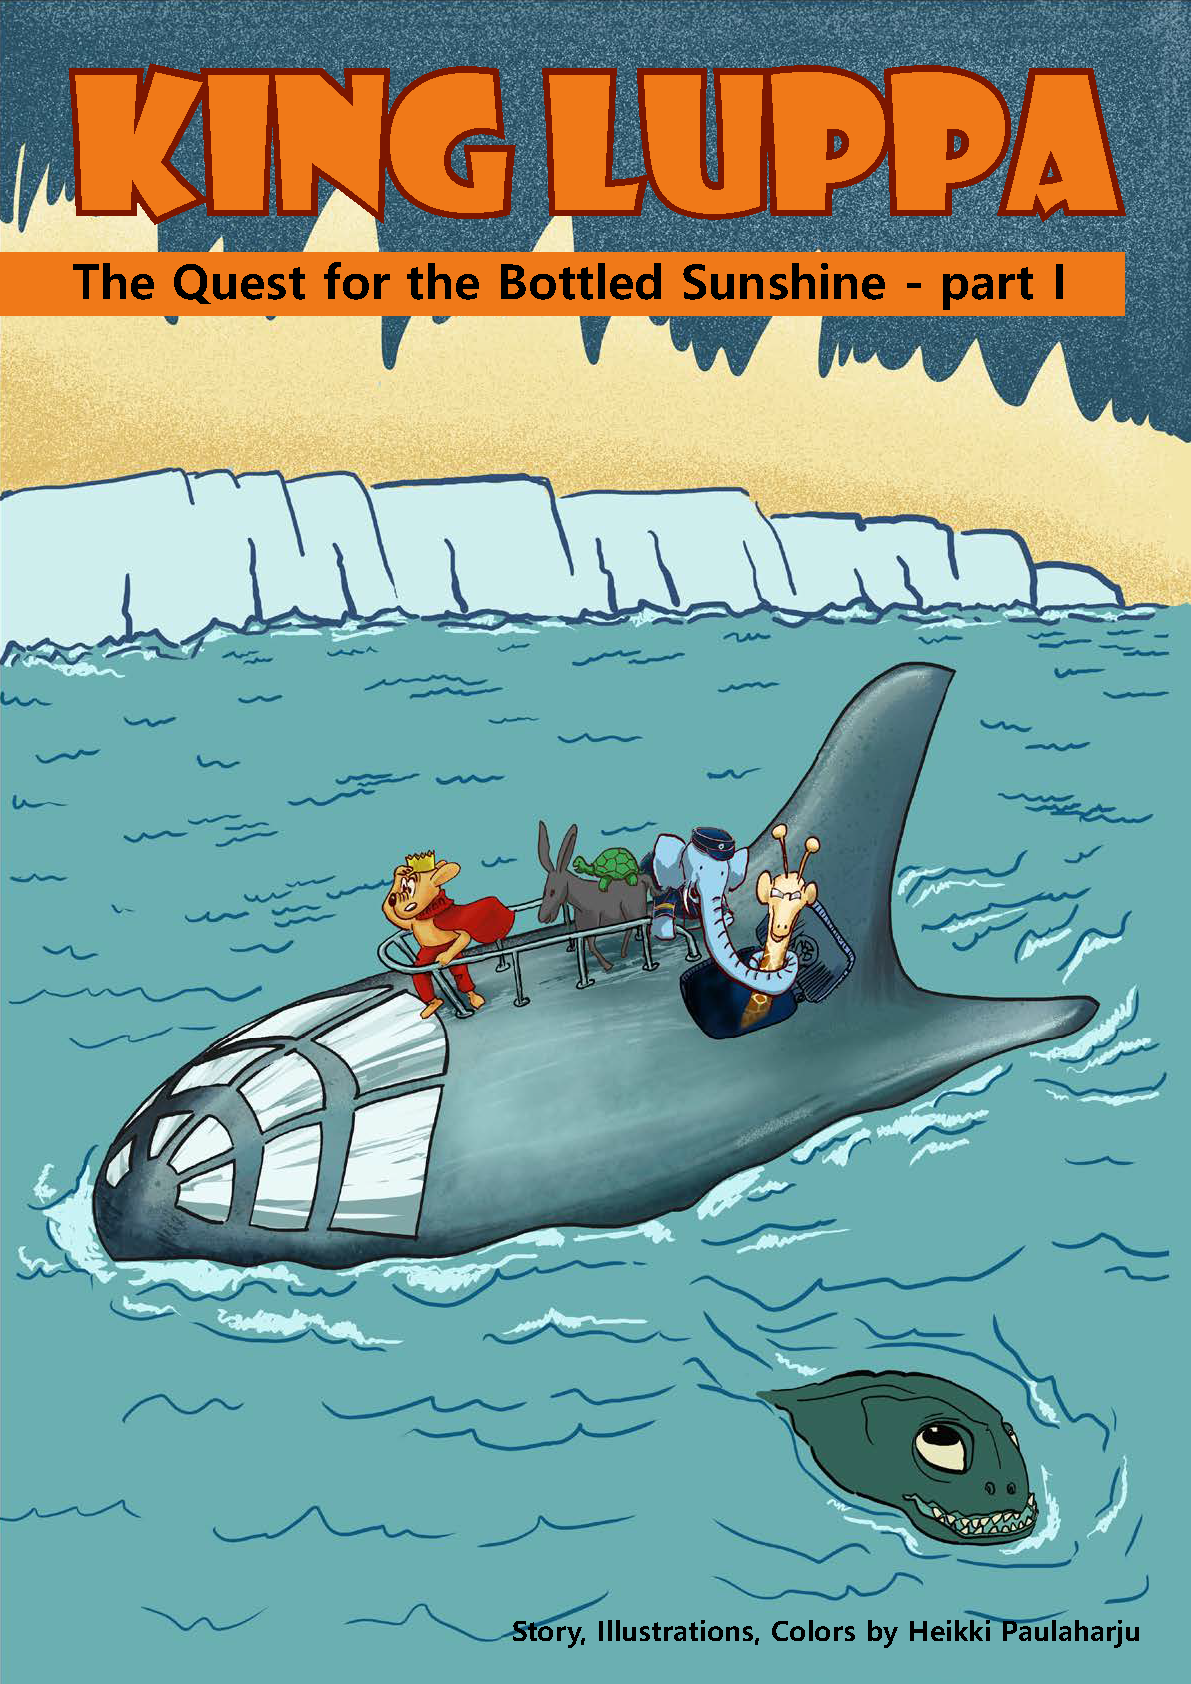 The quest for the bottled sunshine - part 1